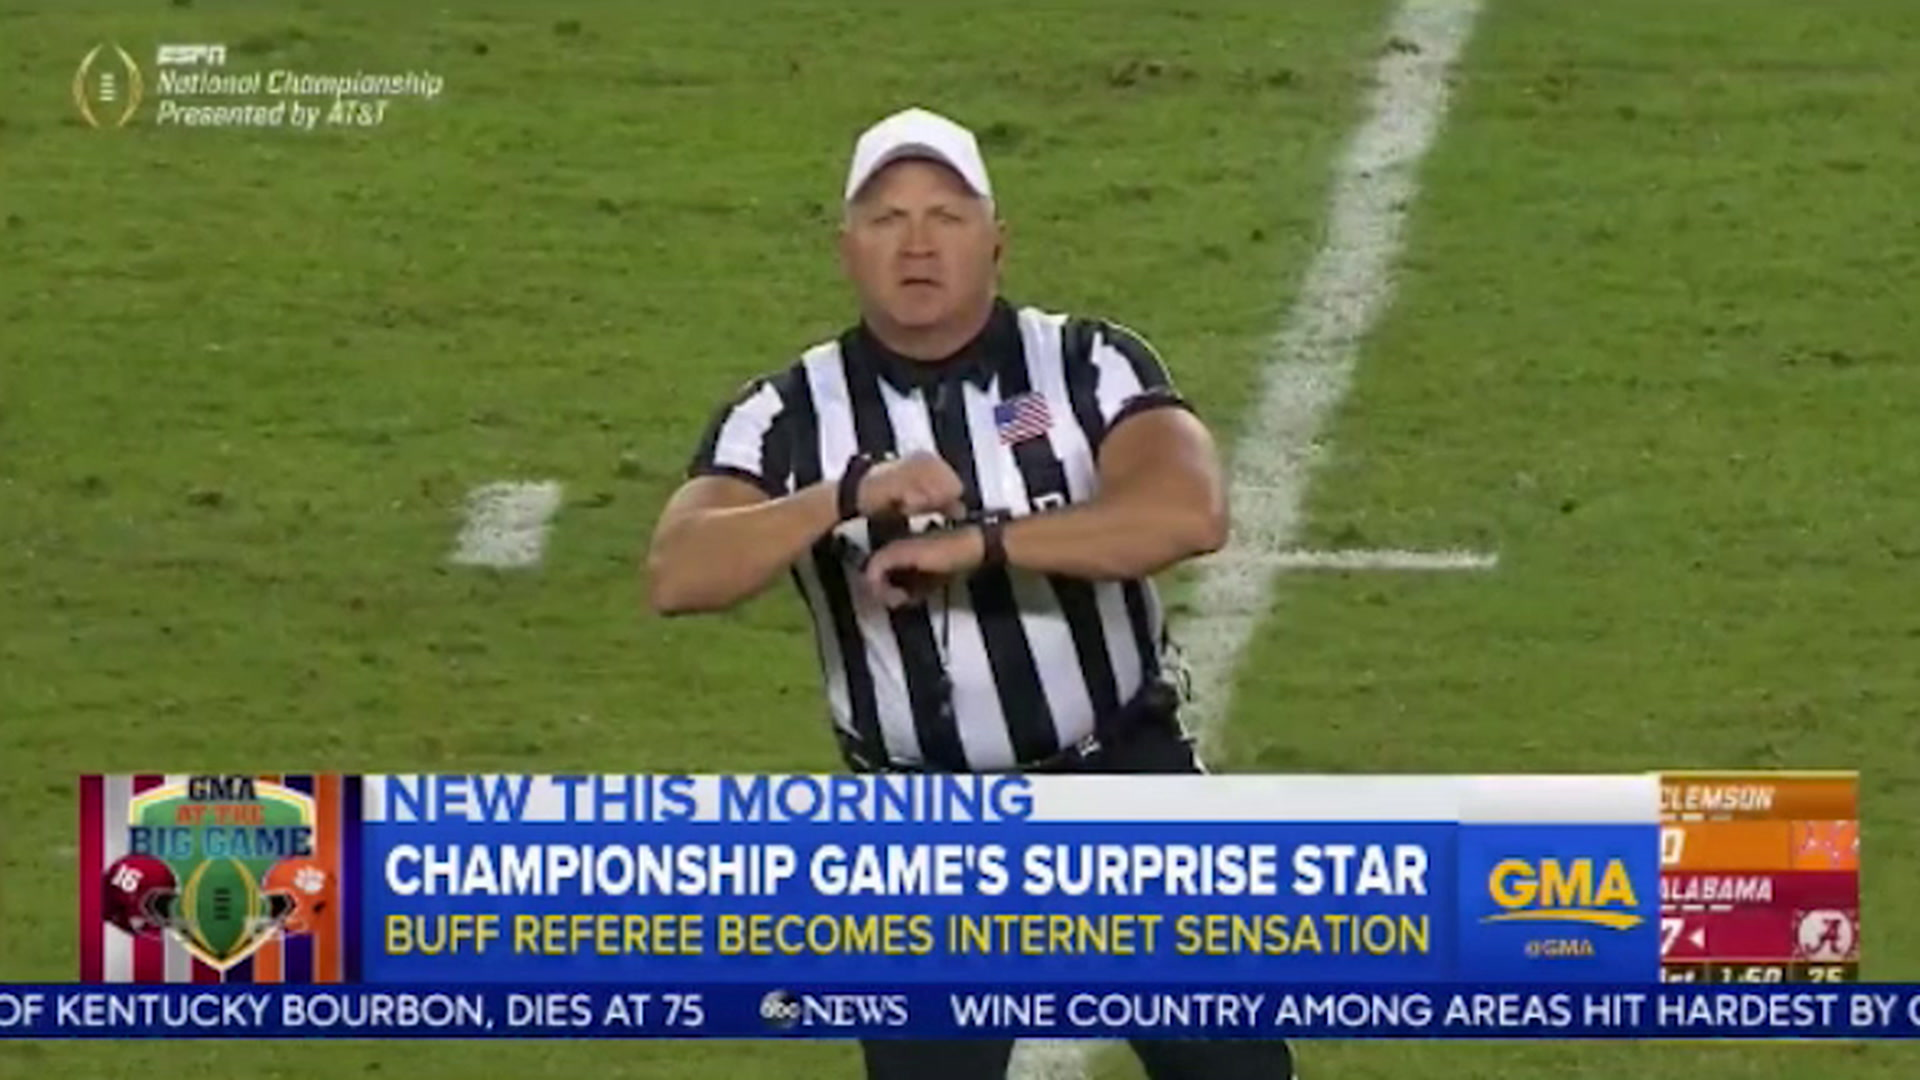 College Football Referee Mike Defee s Buff Arms Steal the Show 1e86fbf3d